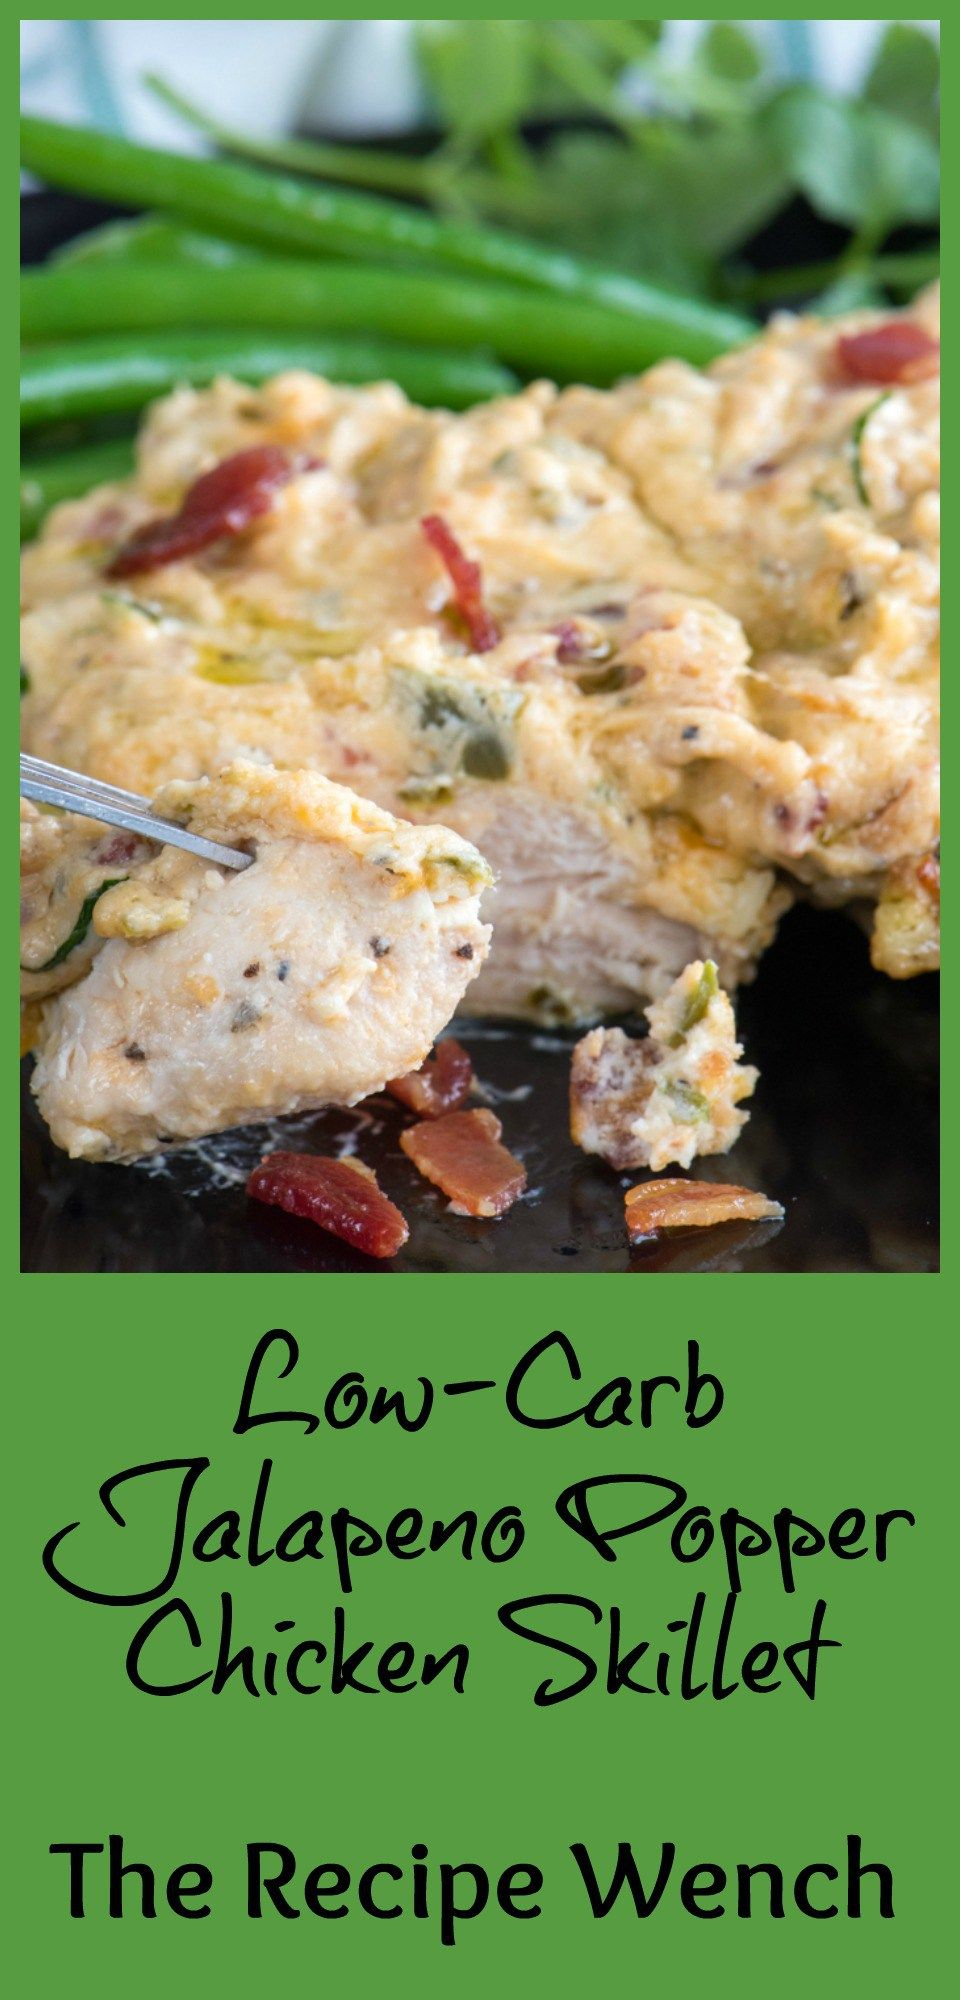 Low Carb Jalapeno Popper Chicken Skillet Recipe Food Pinterest